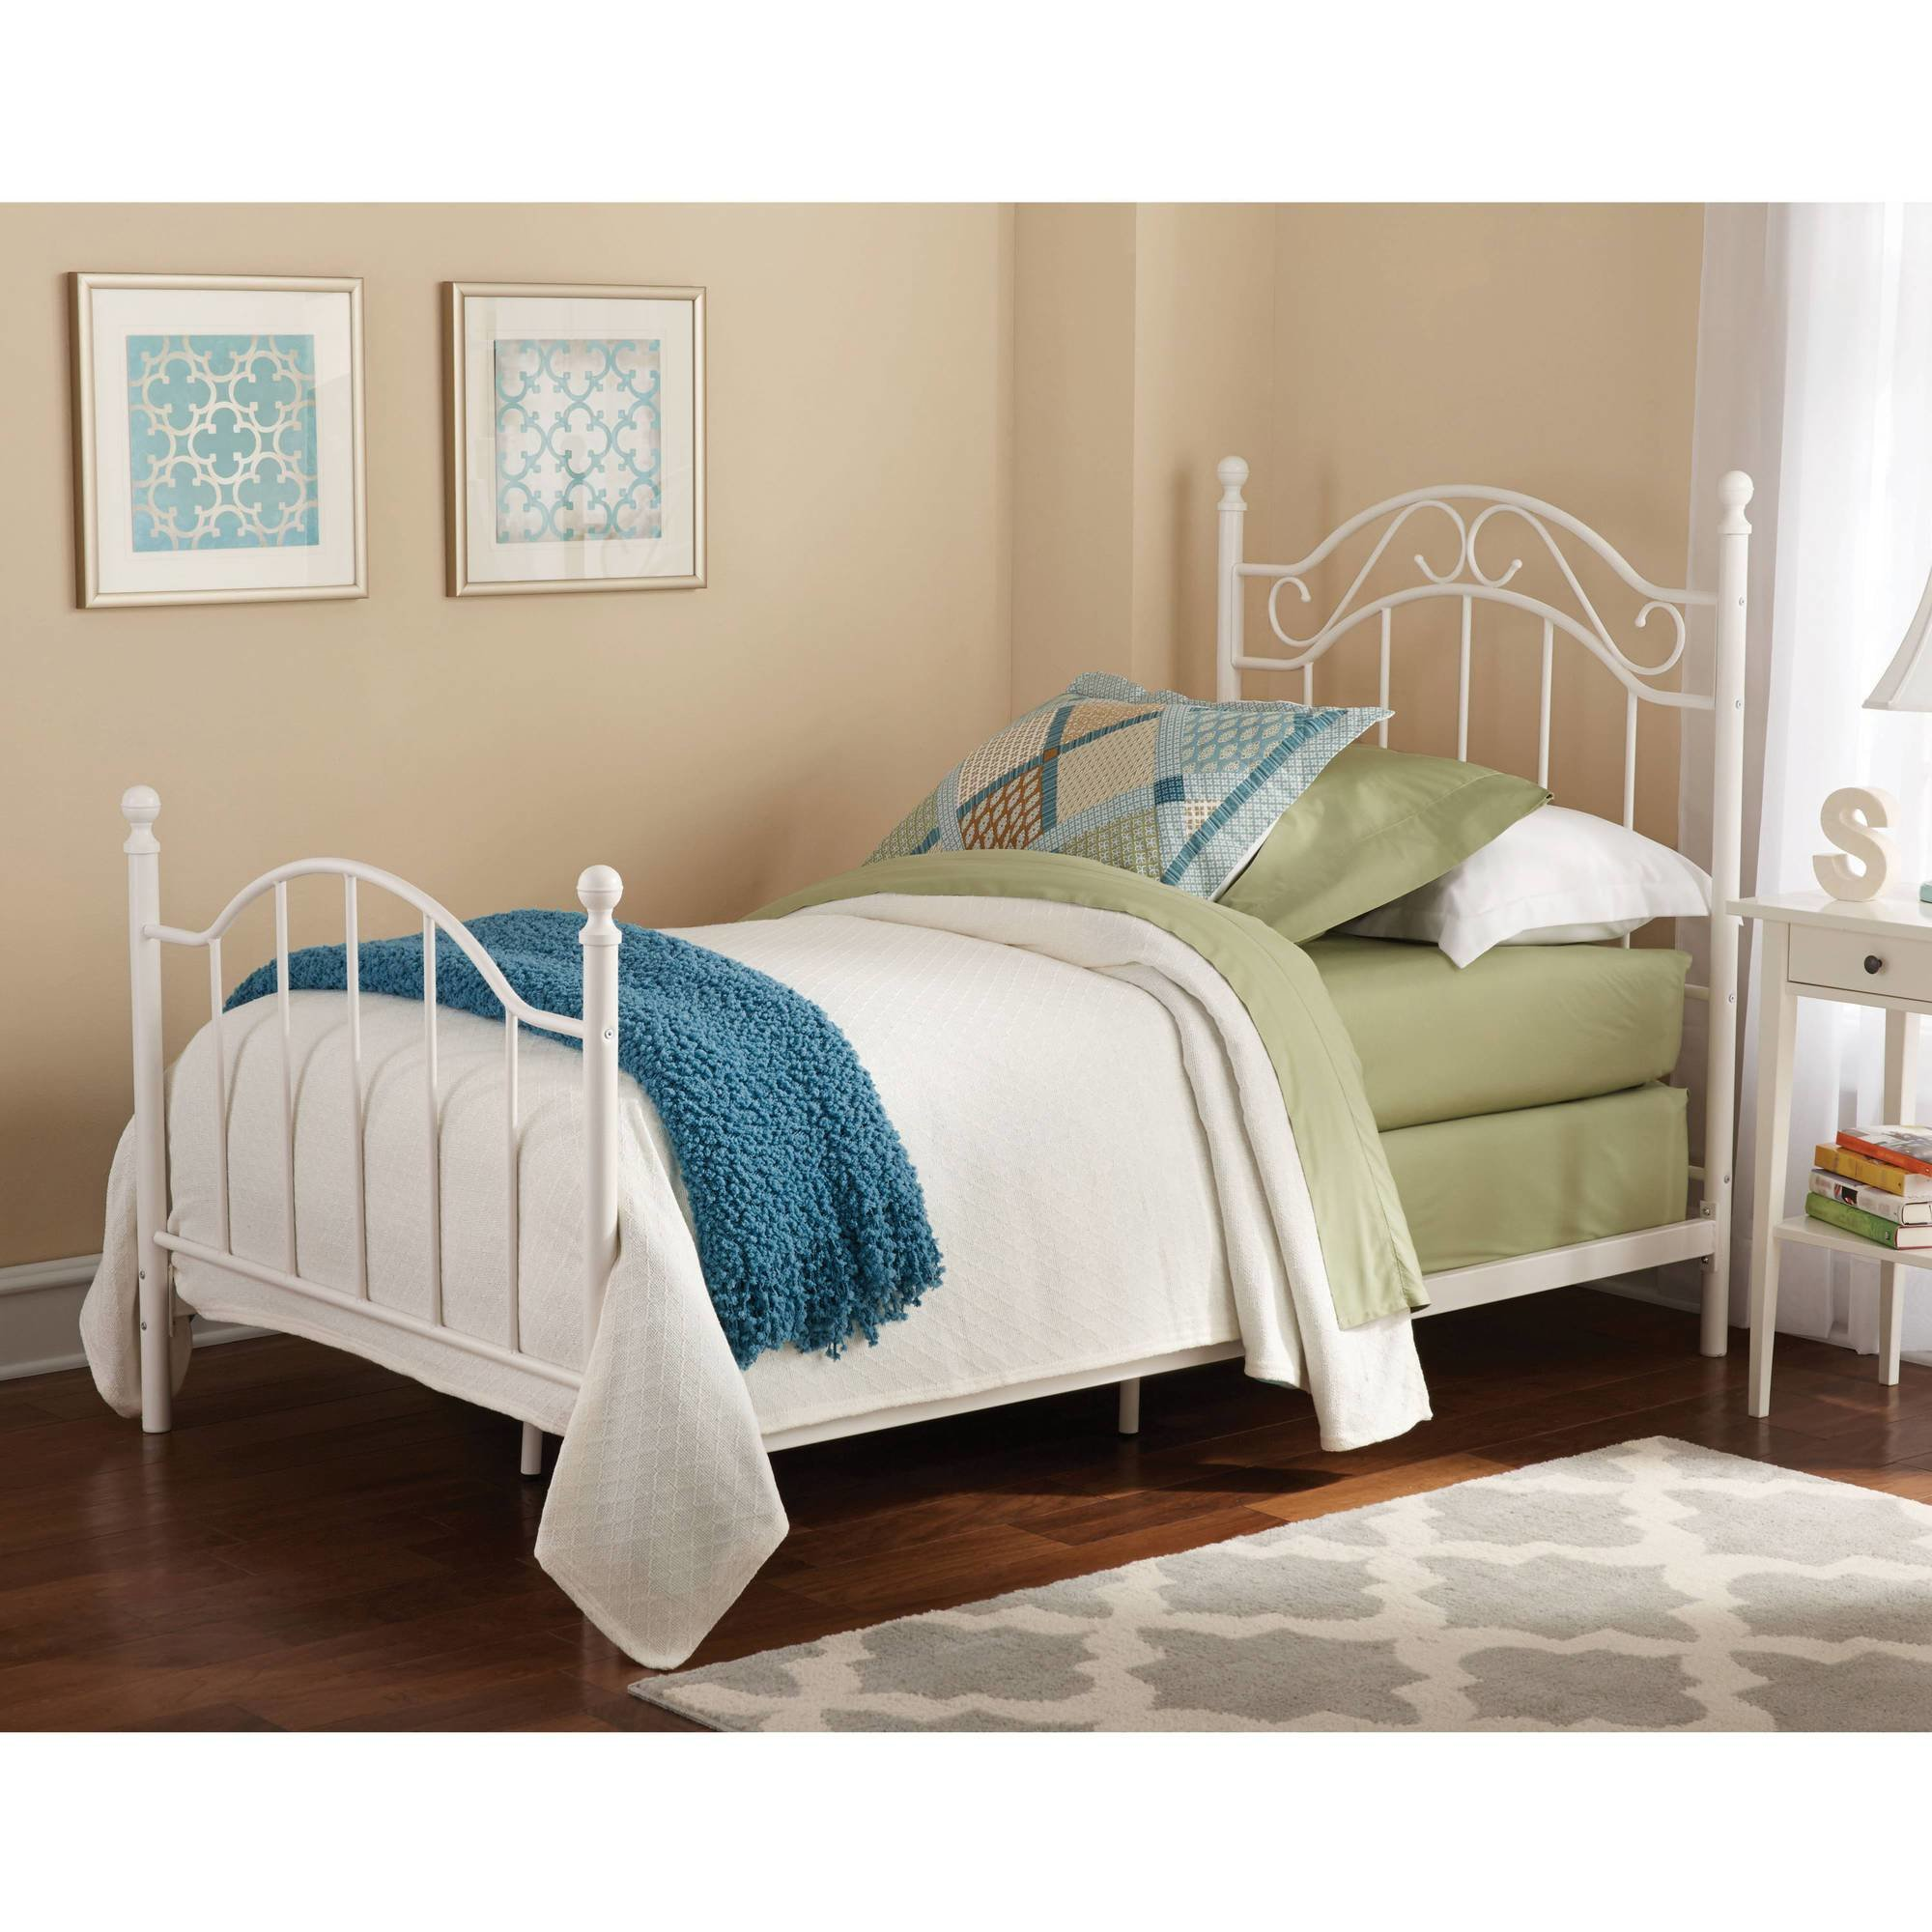 Best Twin Metal Bed Daybeds Frame Footboard Headboard Girls With Pictures